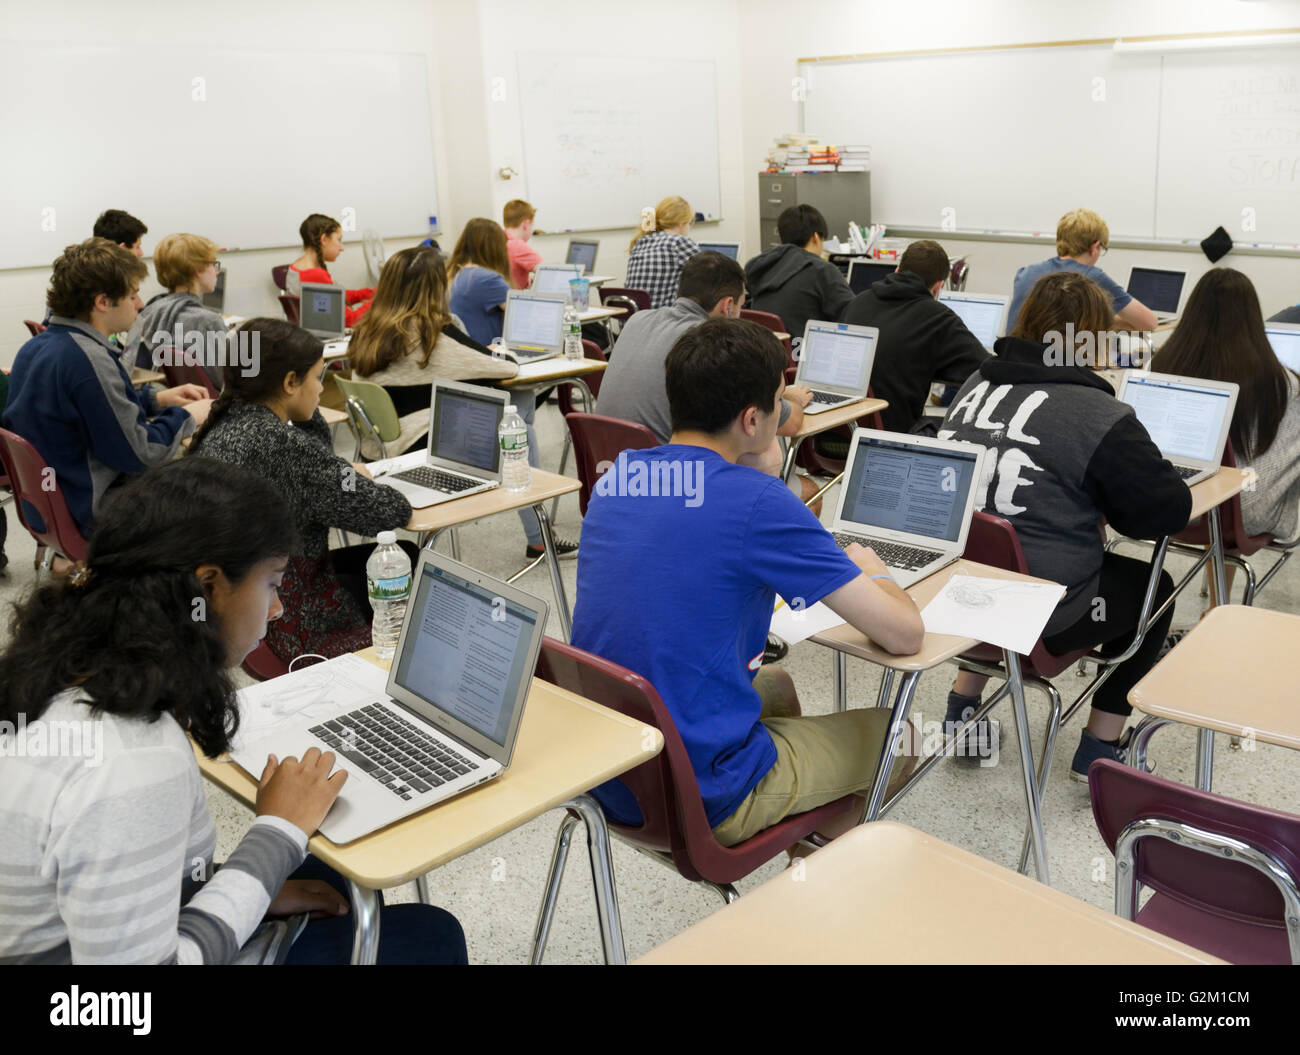 students taking a test on laptops in a high school